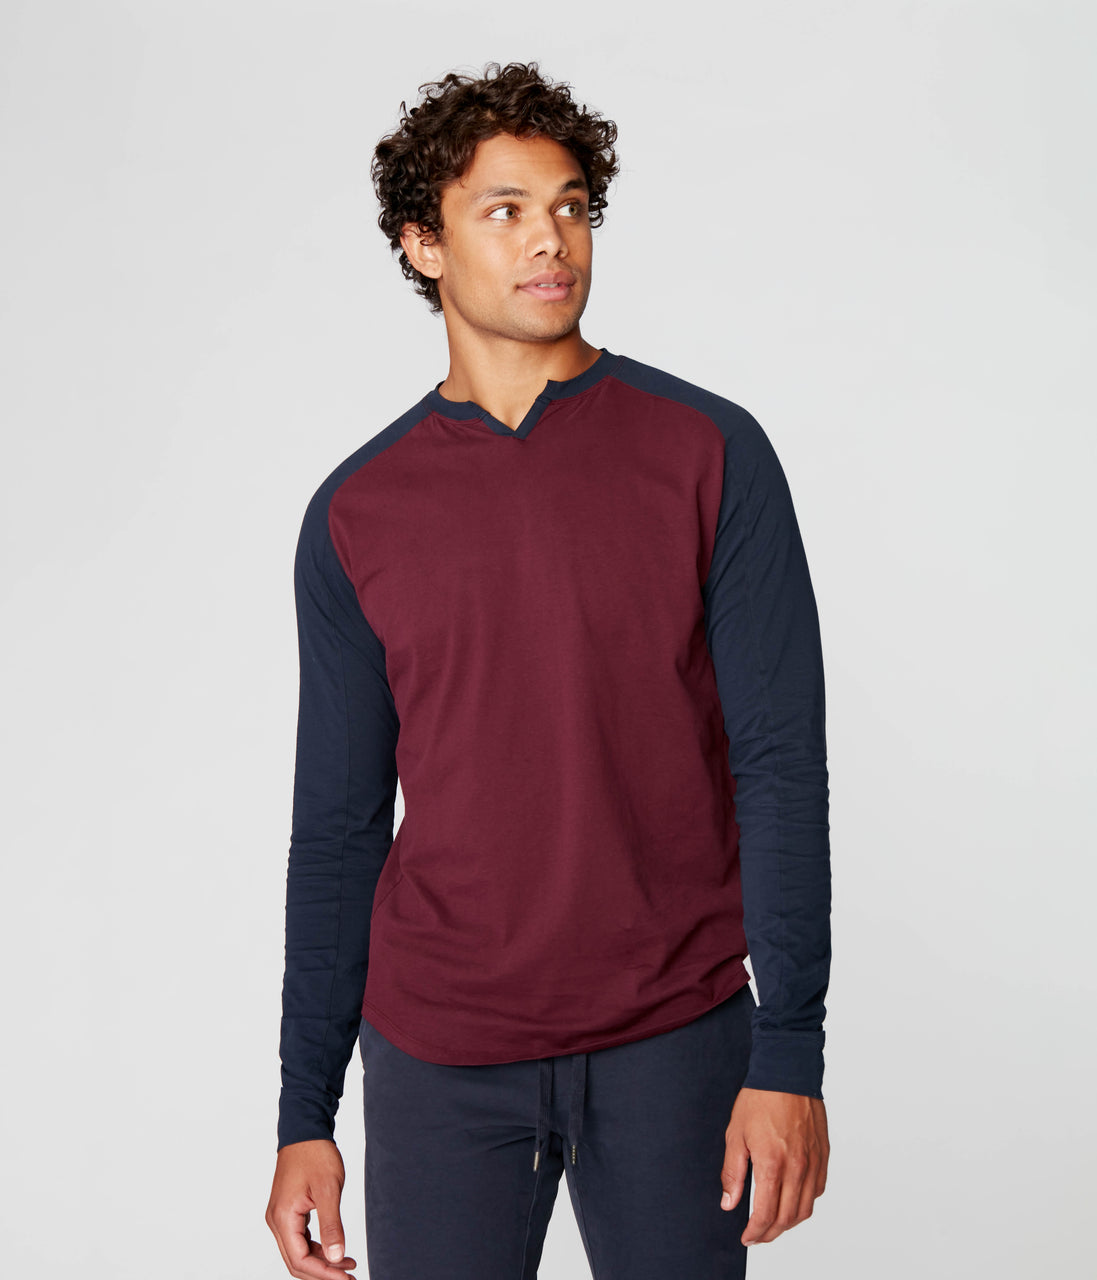 Baseball V-Notch in Premium Cotton Jersey - Wine/Sky Captain - Good Man Brand - Baseball V-Notch in Premium Cotton Jersey - Wine/Sky Captain